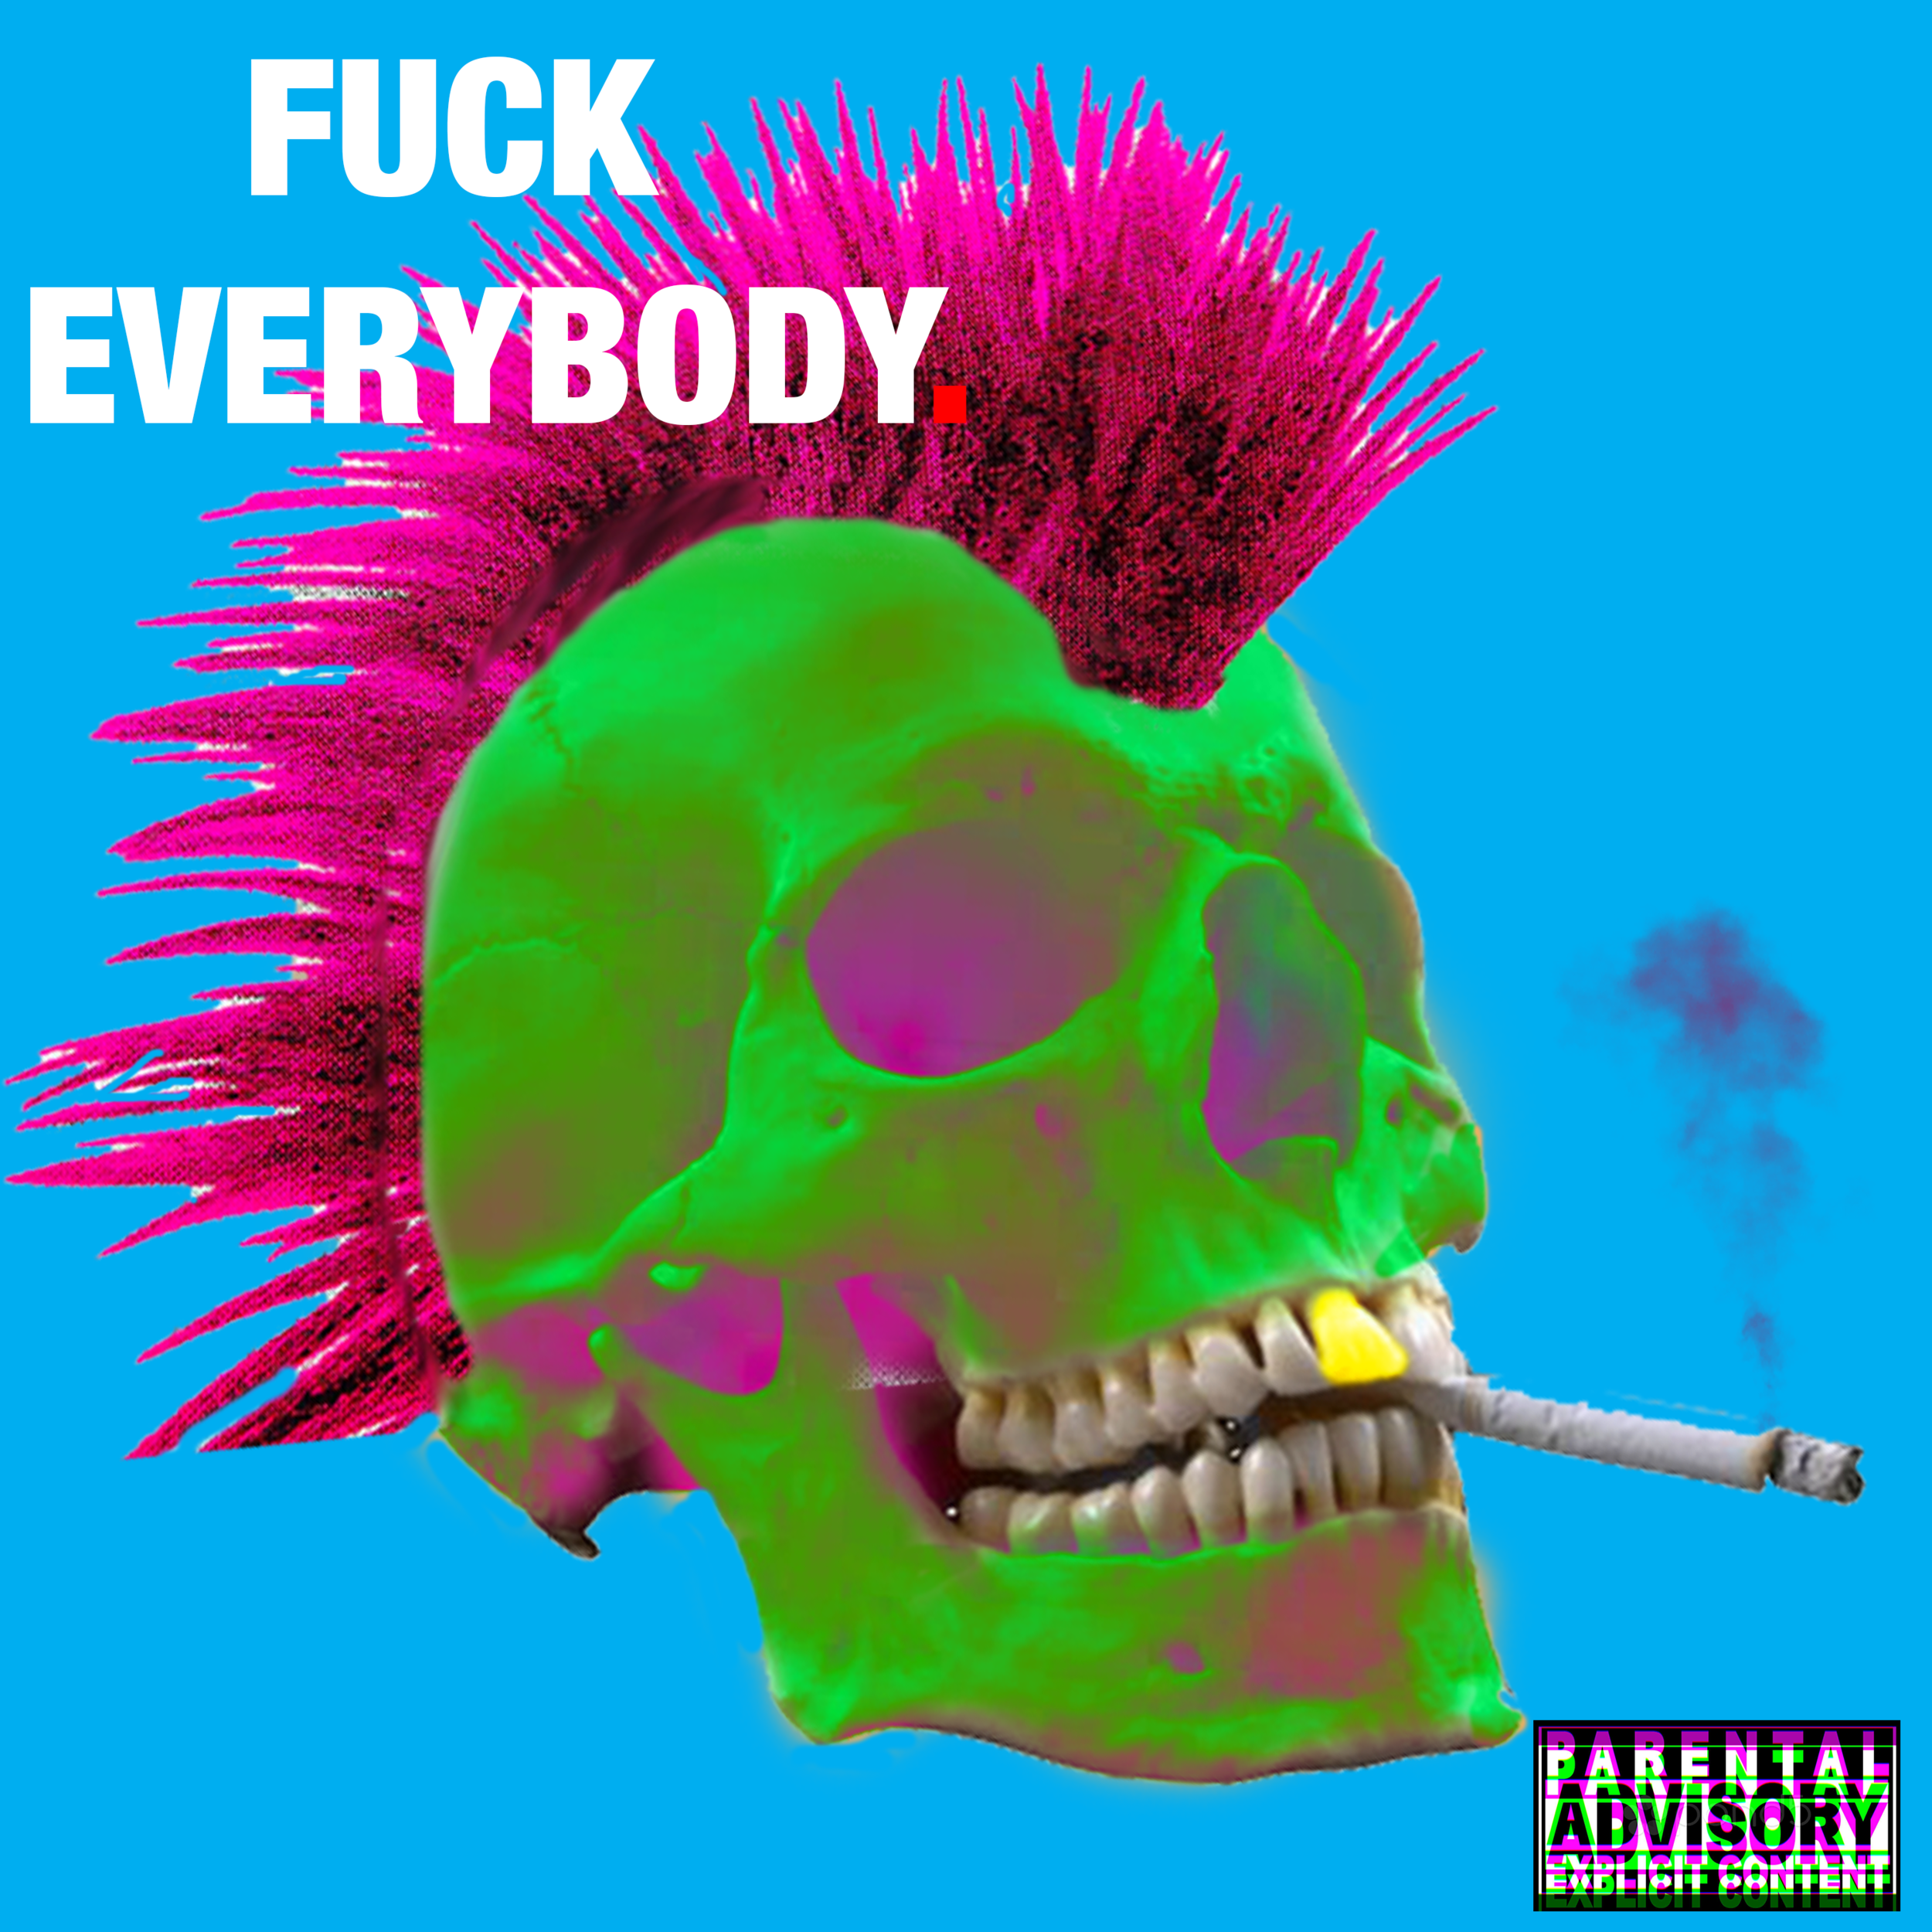 fuckeverybody.png